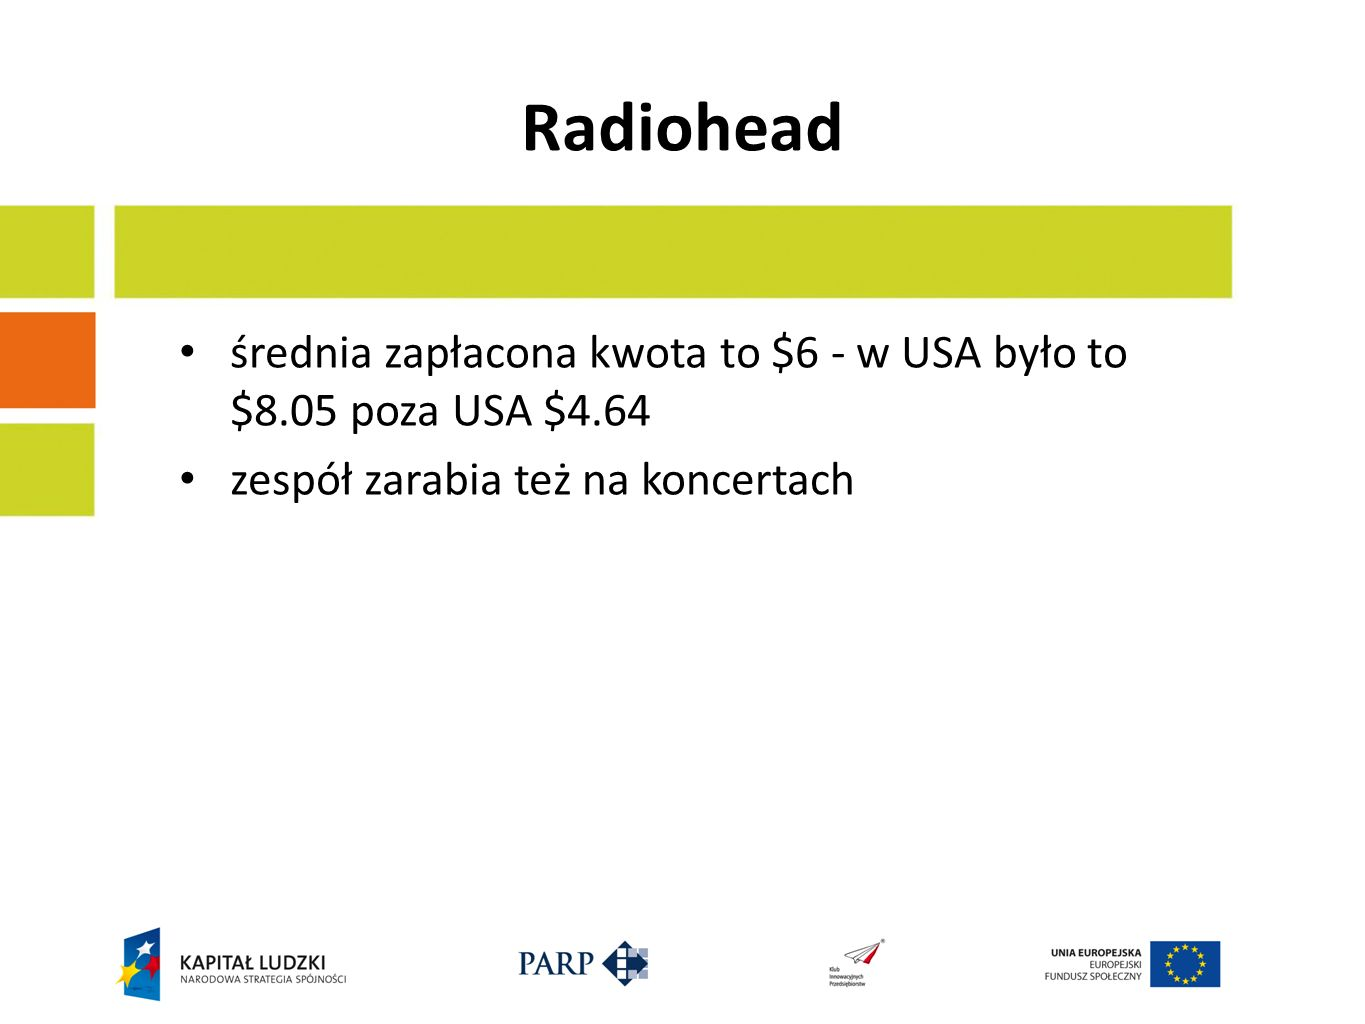 Radiohead Źródło: http://www.comscore.com/Press_Events/Press_Releases/2007/11/Radiohead_Downloads/(language)/eng-US